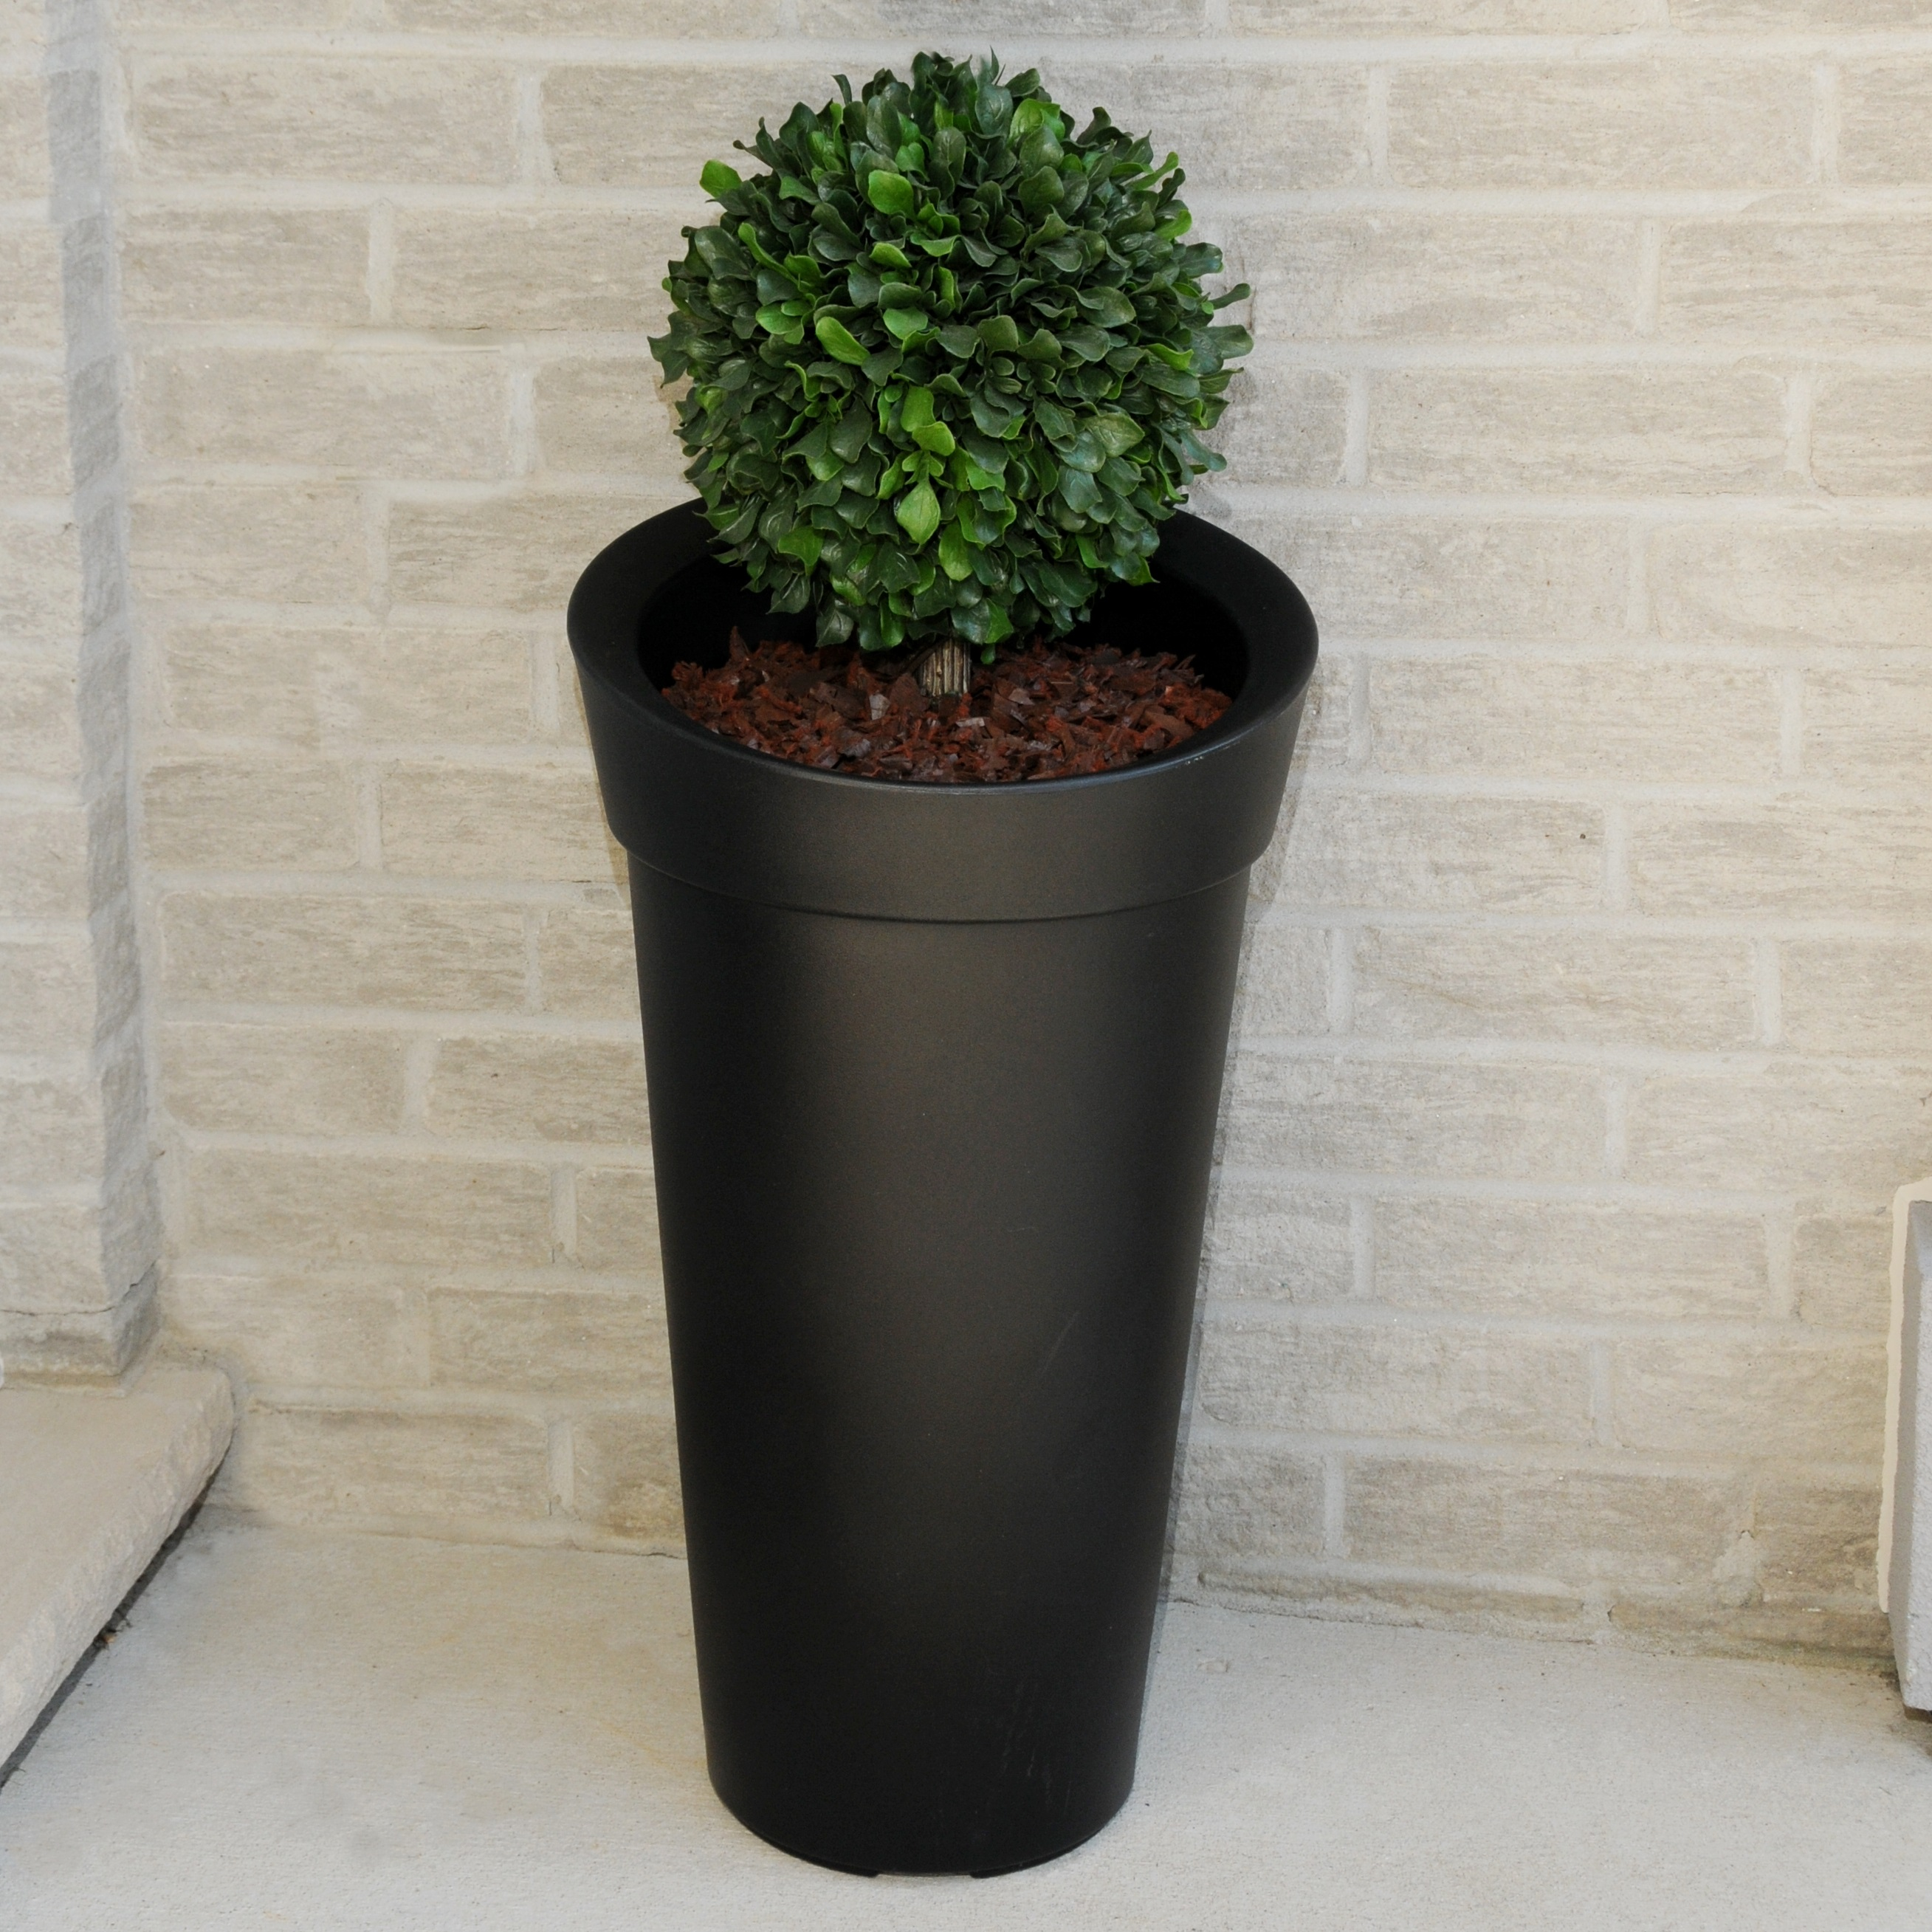 Creston Tall Planter Black by Garden Planters